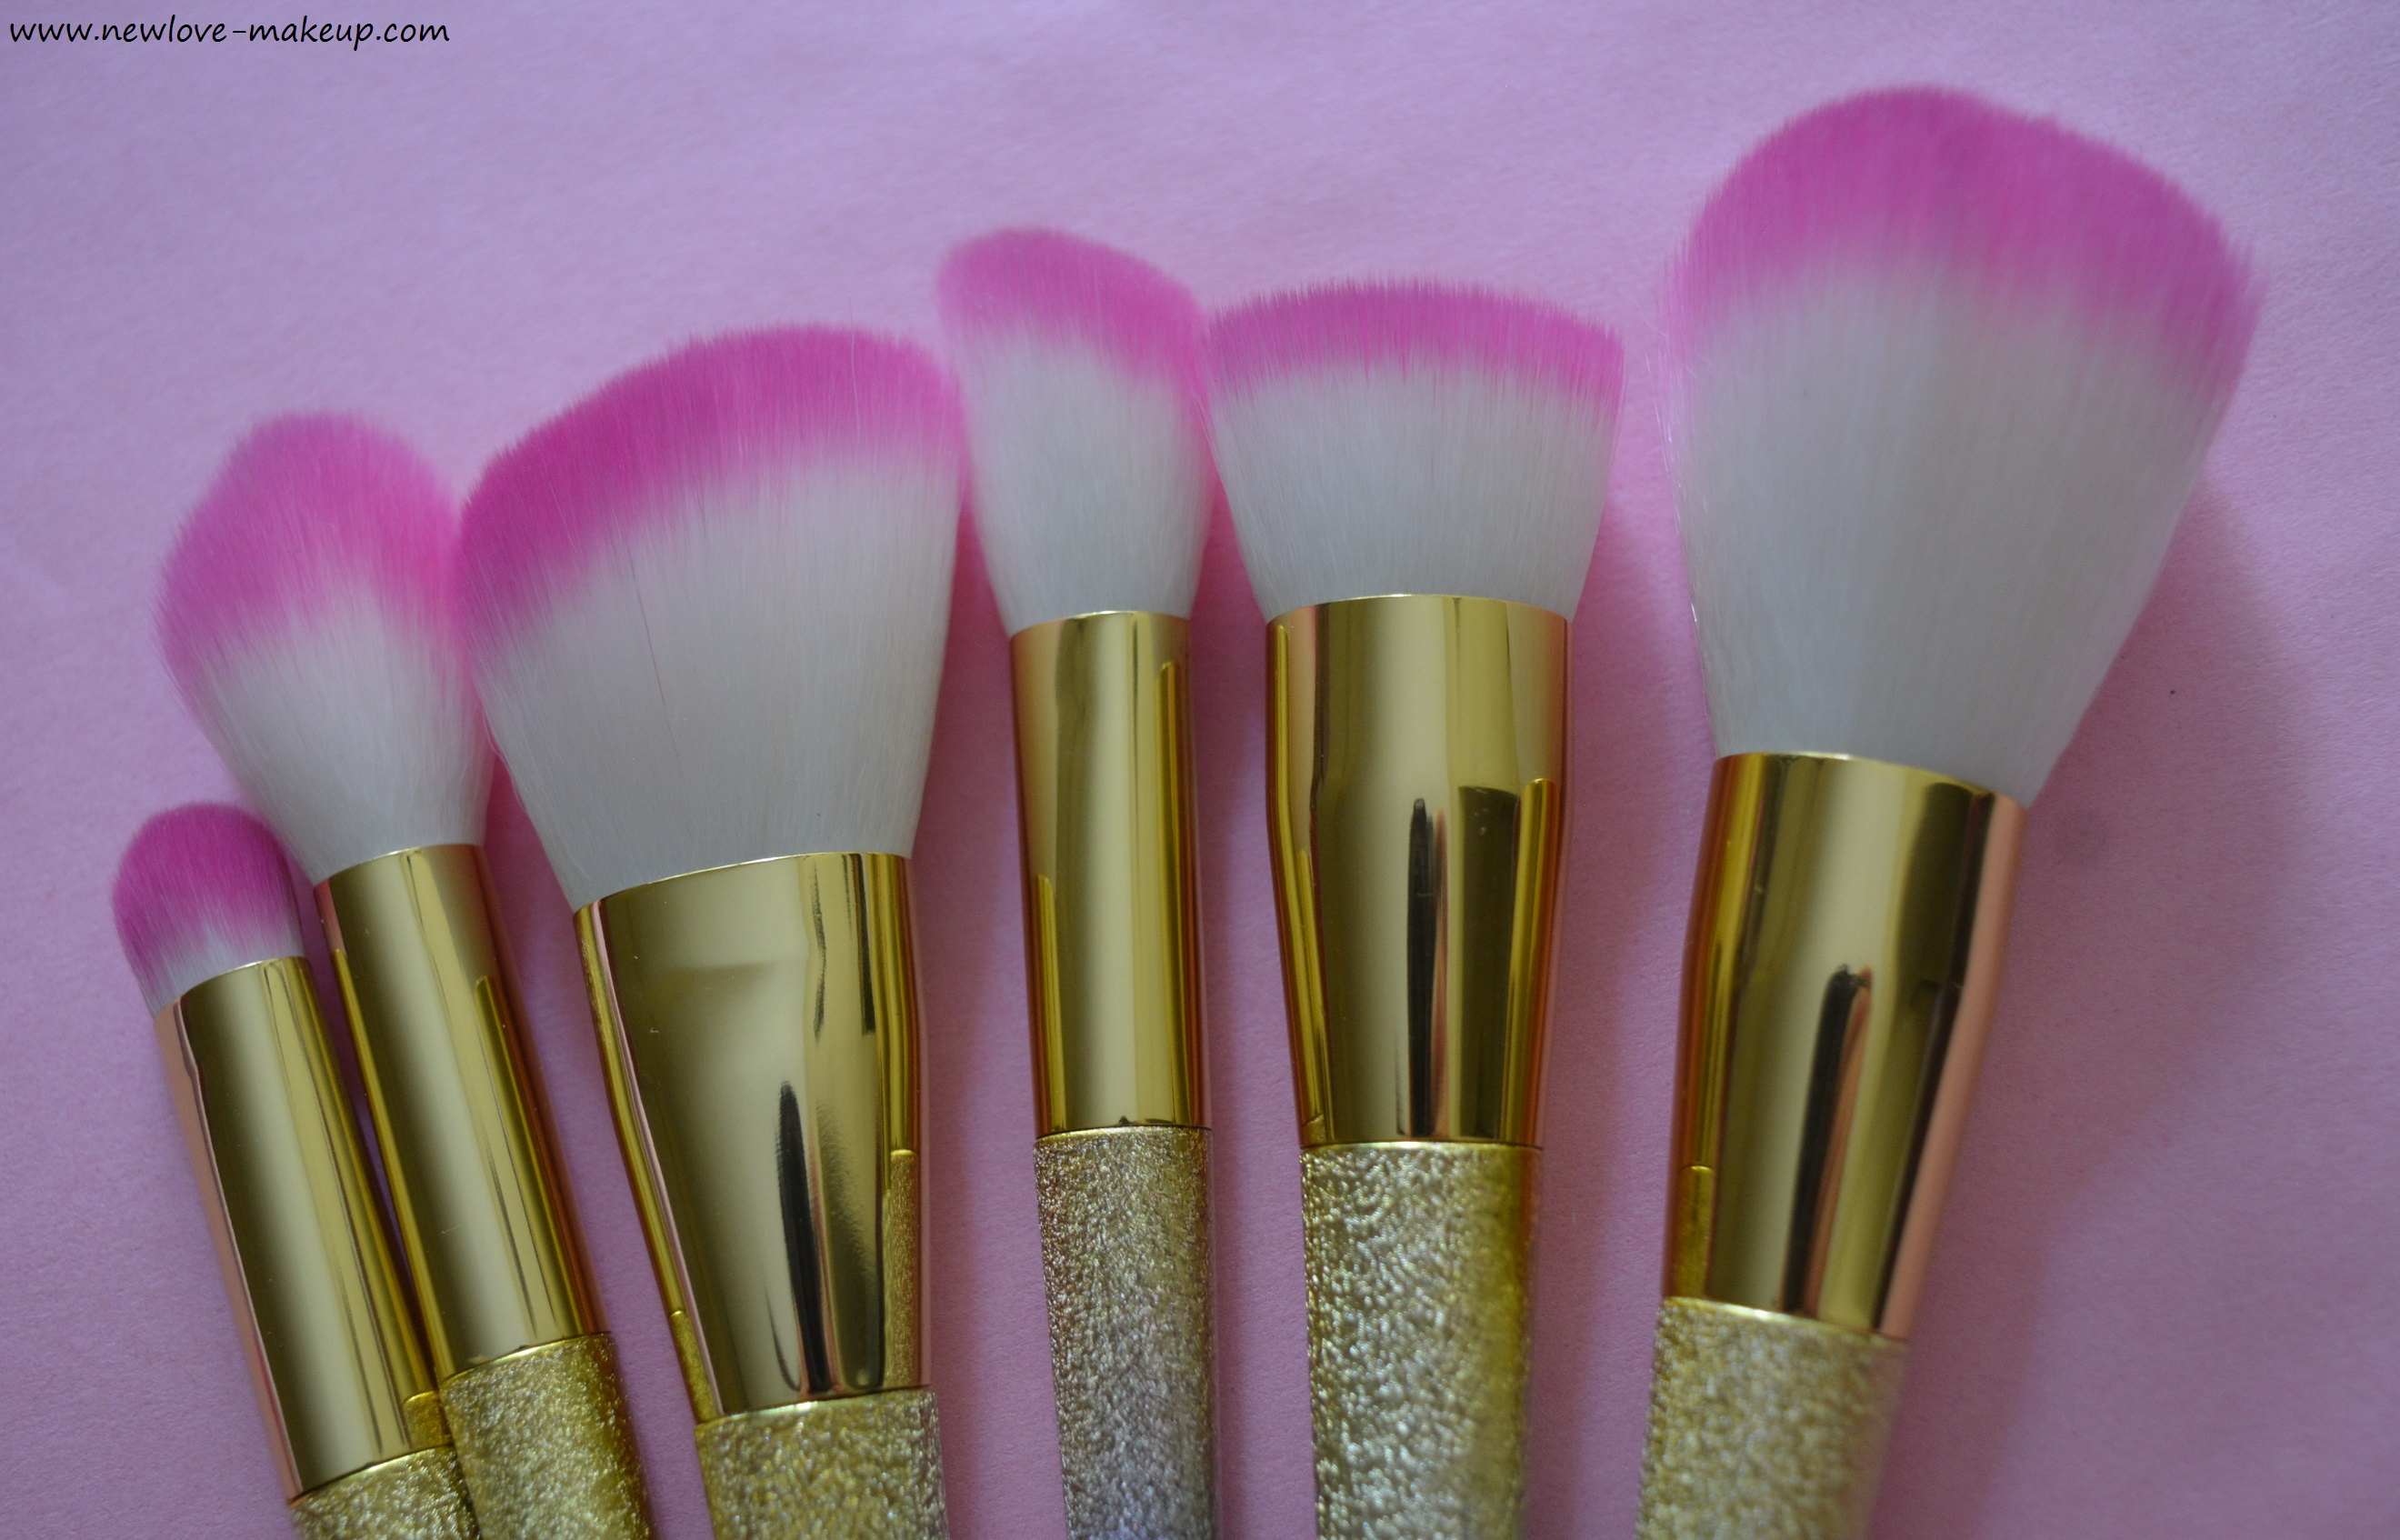 Docolor Fantasy Makeup Brush Set/Contouring Brush Review